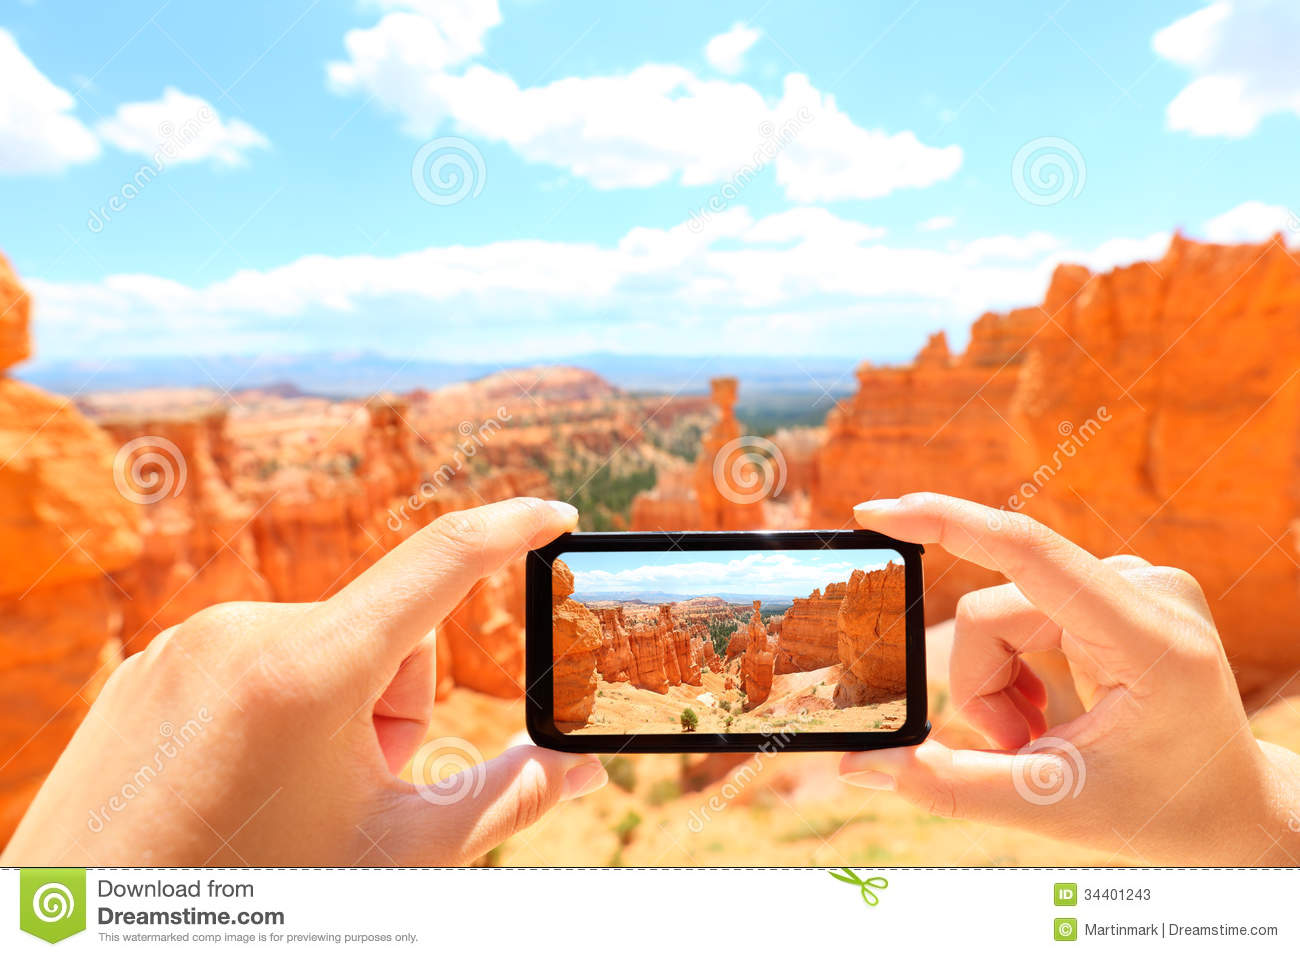 Can Airport X Ray Scanners Damage Phone Laptop also El escner del aeropuerto further Verpackung Vorlagen 520558 likewise Stock Photos Smartphone Taking Photo Bryce Canyon Nature Close Up Mobile Phone Camera Screen Photographing Beautiful American Landscape Image34401243 as well 7 Technologies I Used To Use While Selling Copiers. on cell phone with suitcase